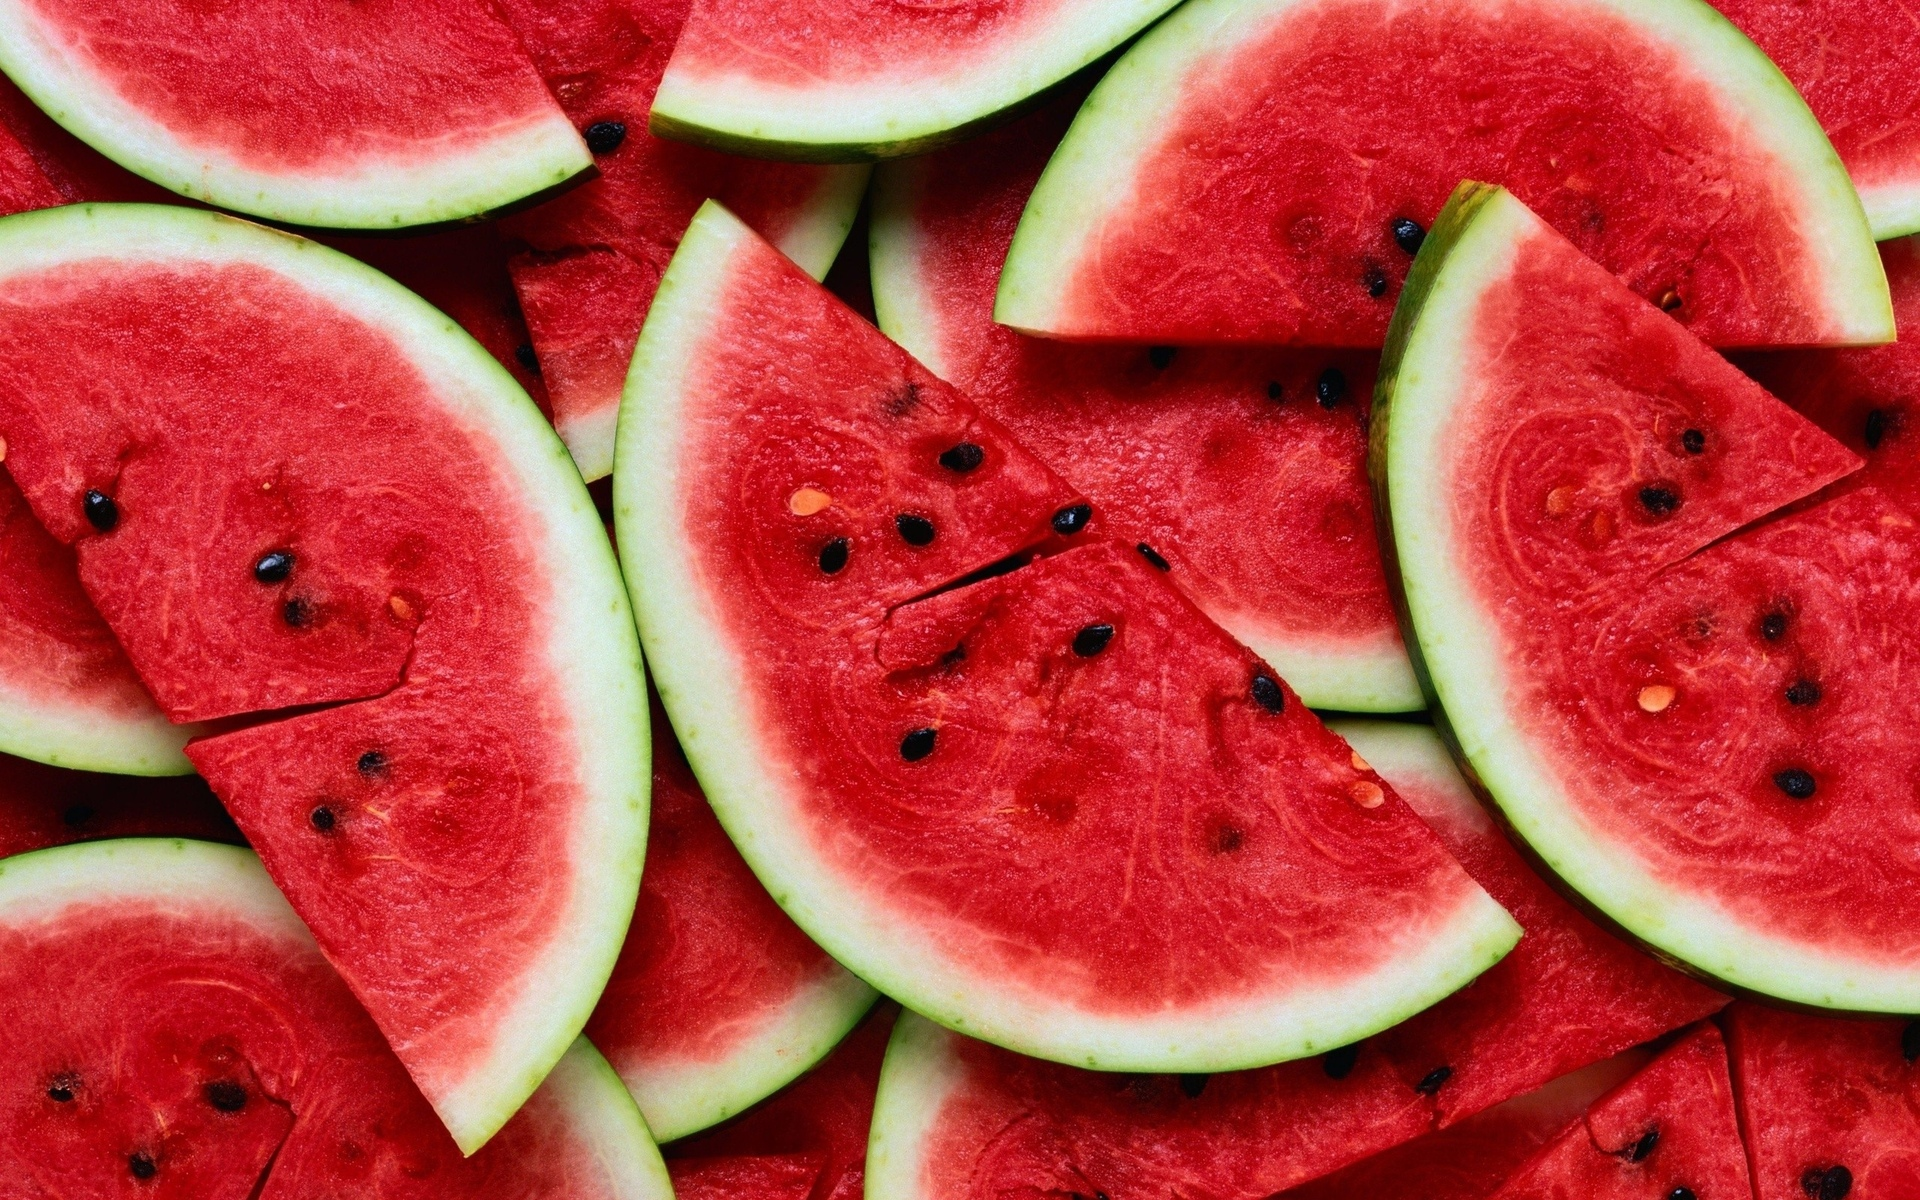 Wedding Watermelon Color watermelon fruit food color red seeds collage wallpaper 1920x1200 26488 wallpaperup